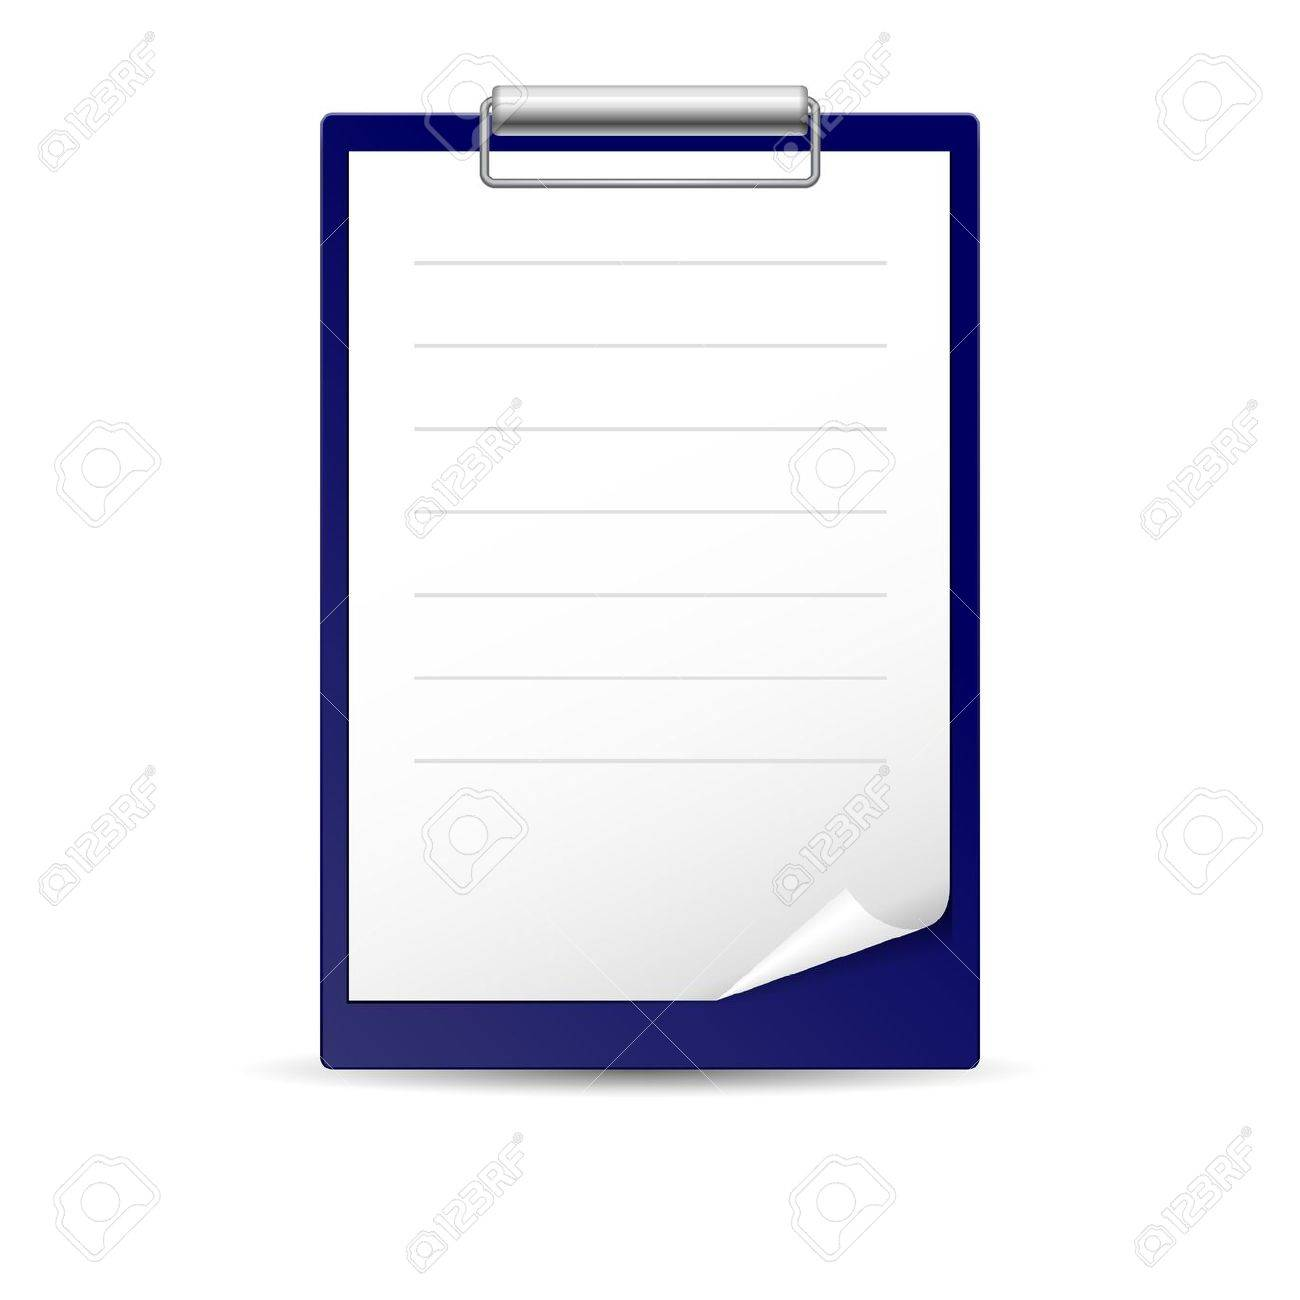 Icon for notes, paper for notes on the dark basis Stock Vector - 15019291